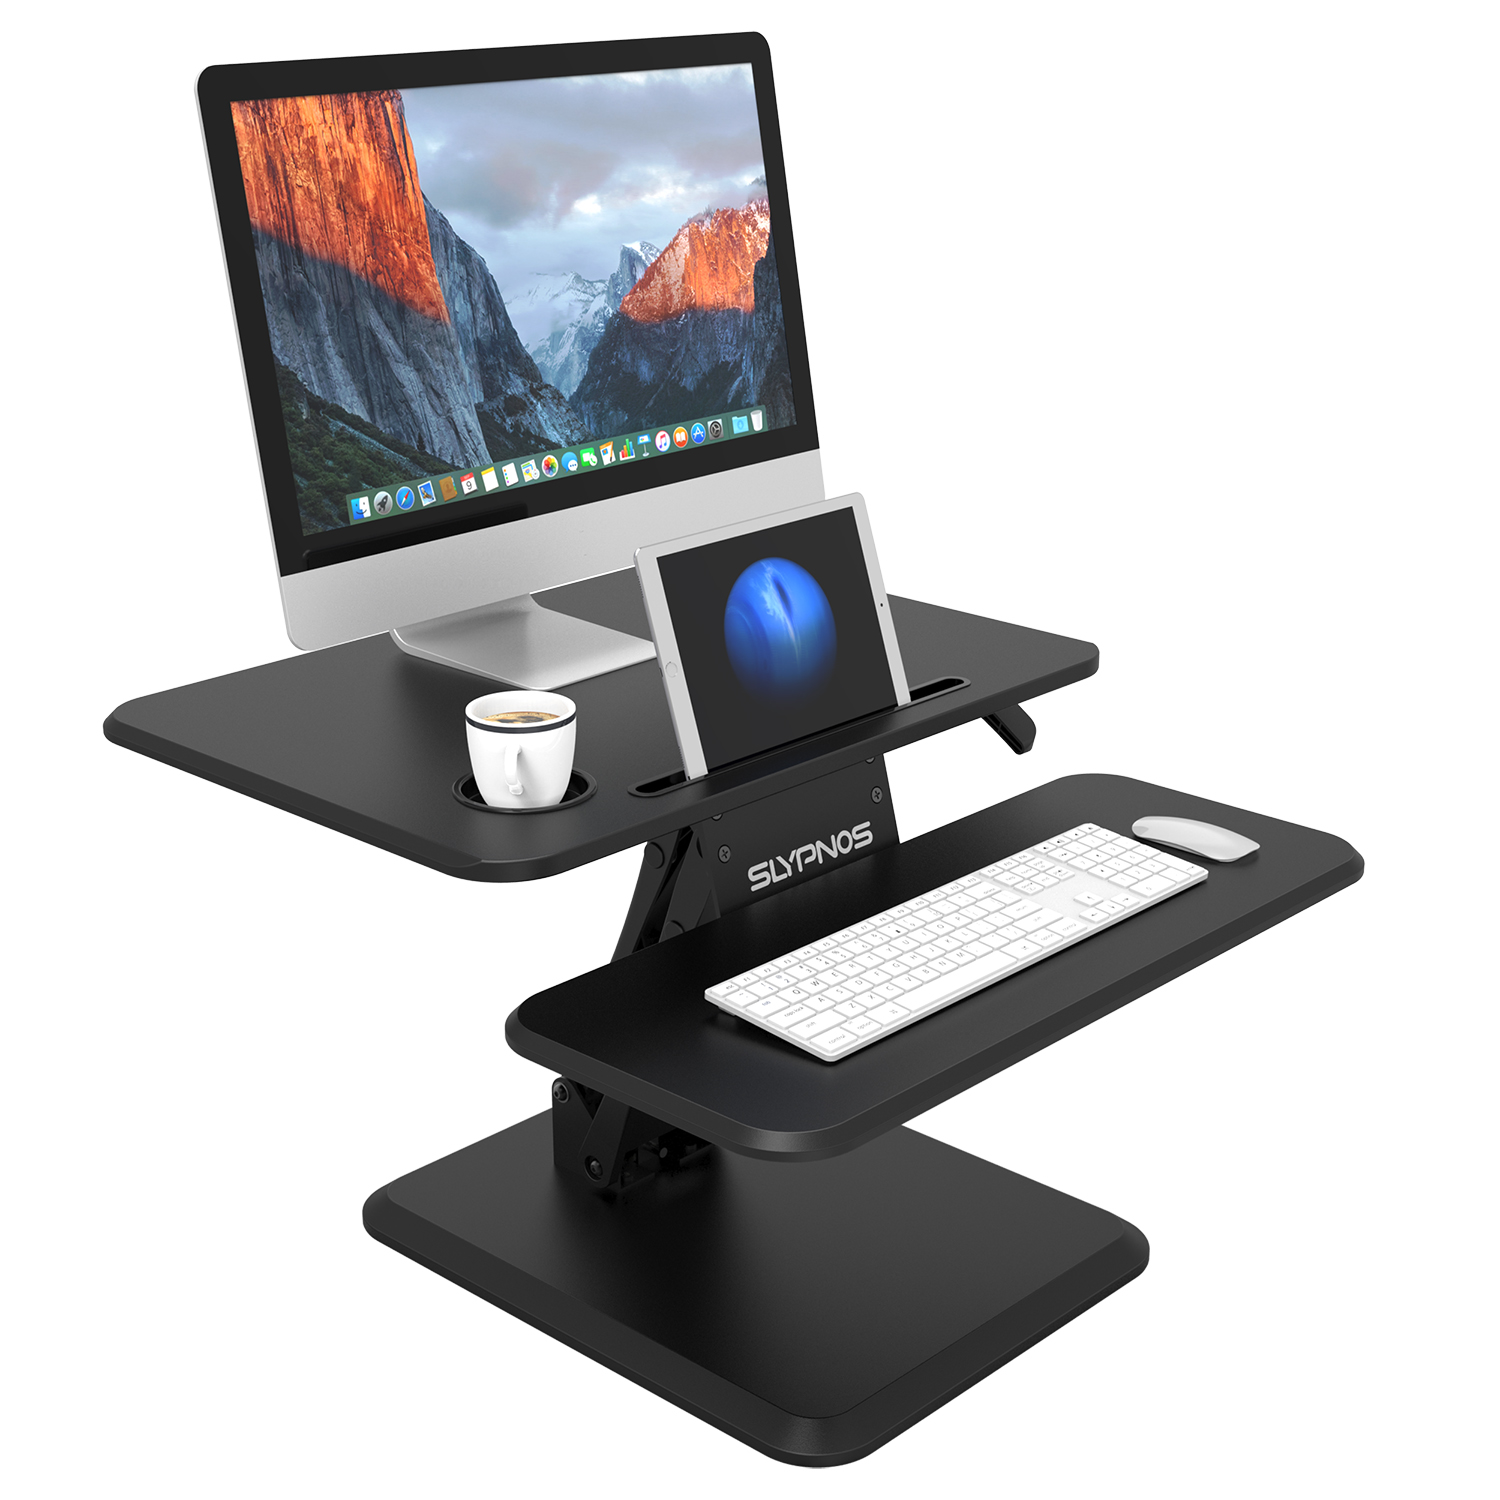 Manual Adjustable Standing Desk Converter Riser Gas Spring Arm Keyboard Mouse Deck Cup Holder Office Home Computer Lift Table